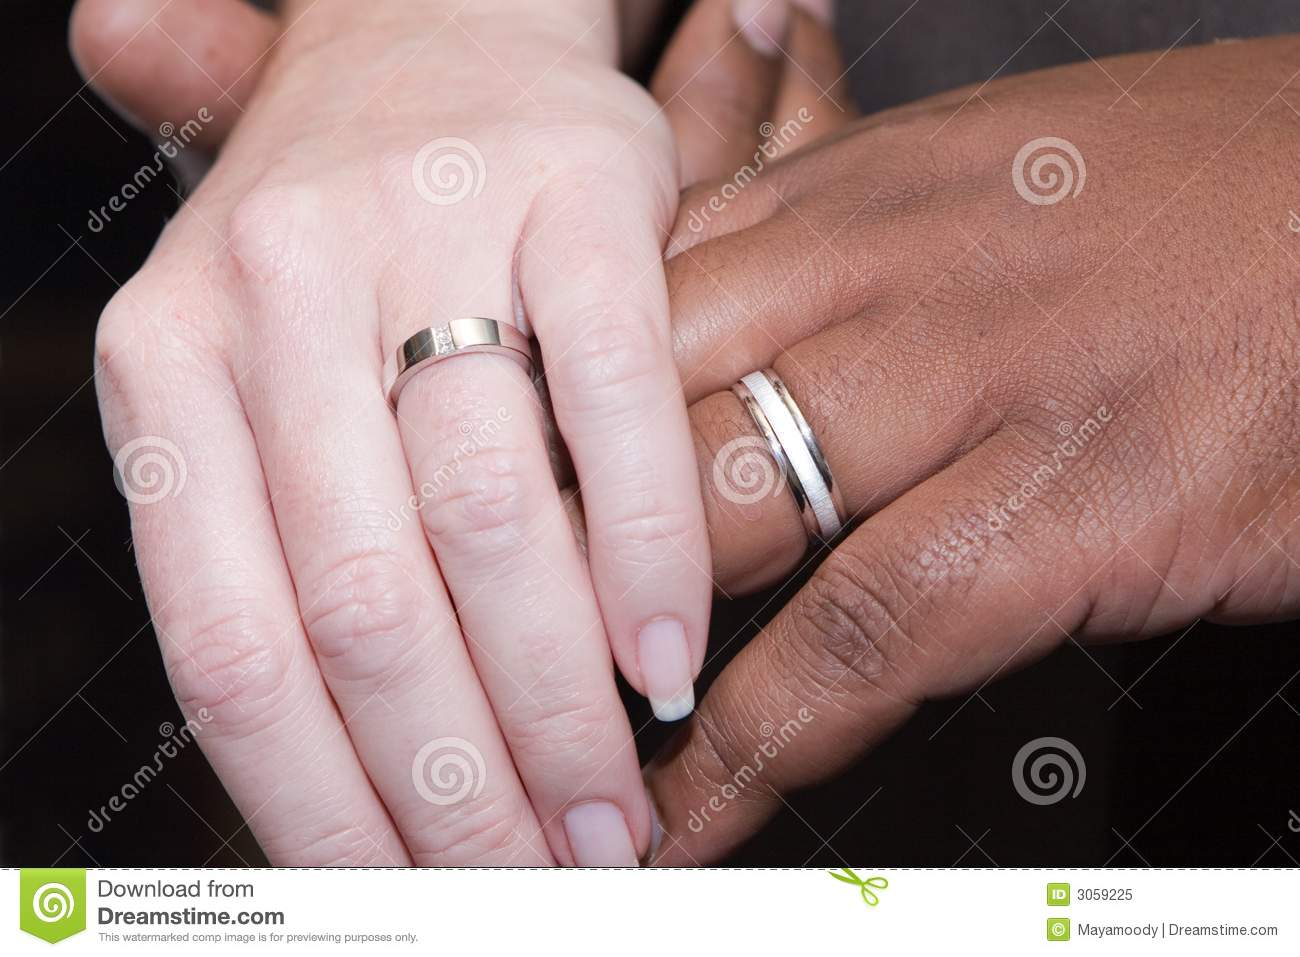 Interracial Coulpes Showing Wedding Rings